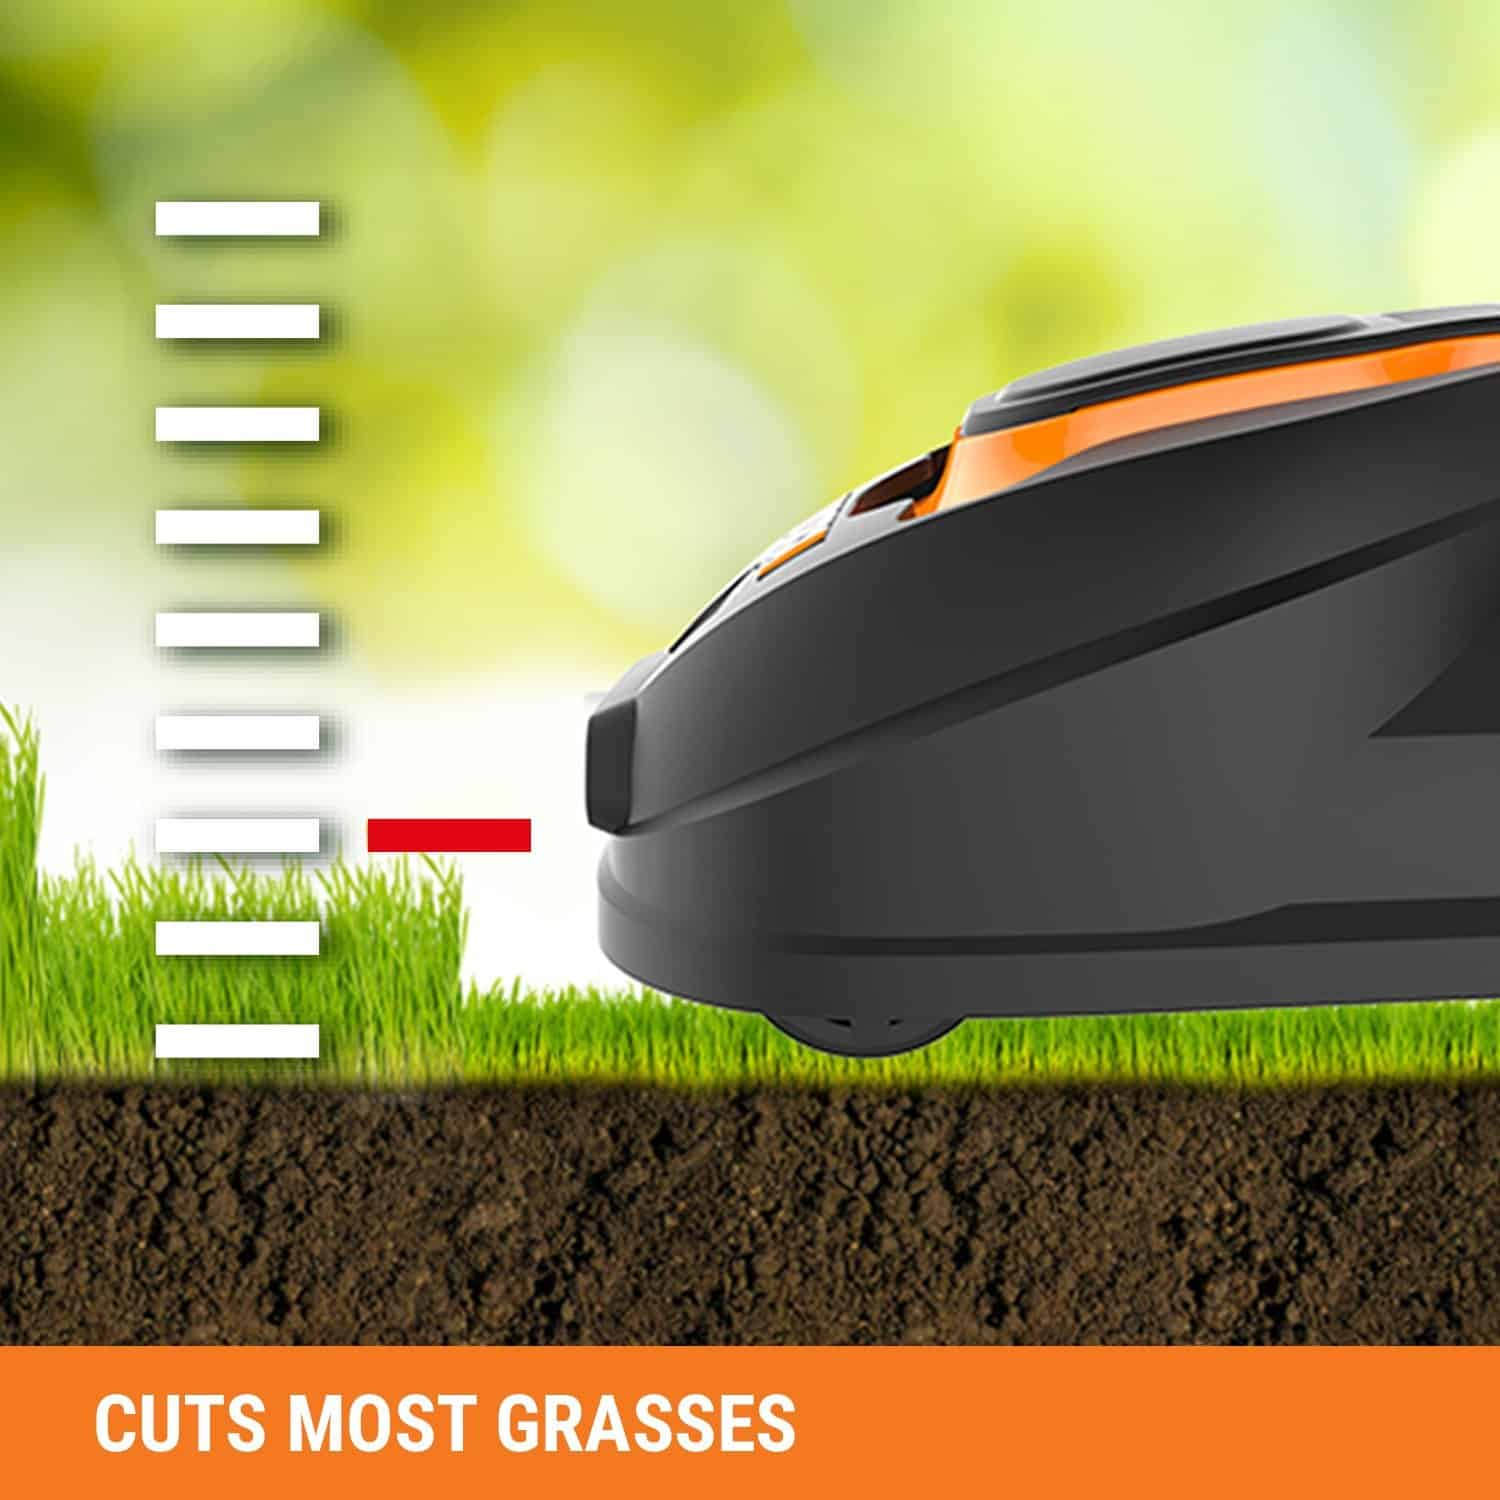 Worx Landroid Robotic Lawn Mower grass cutting height